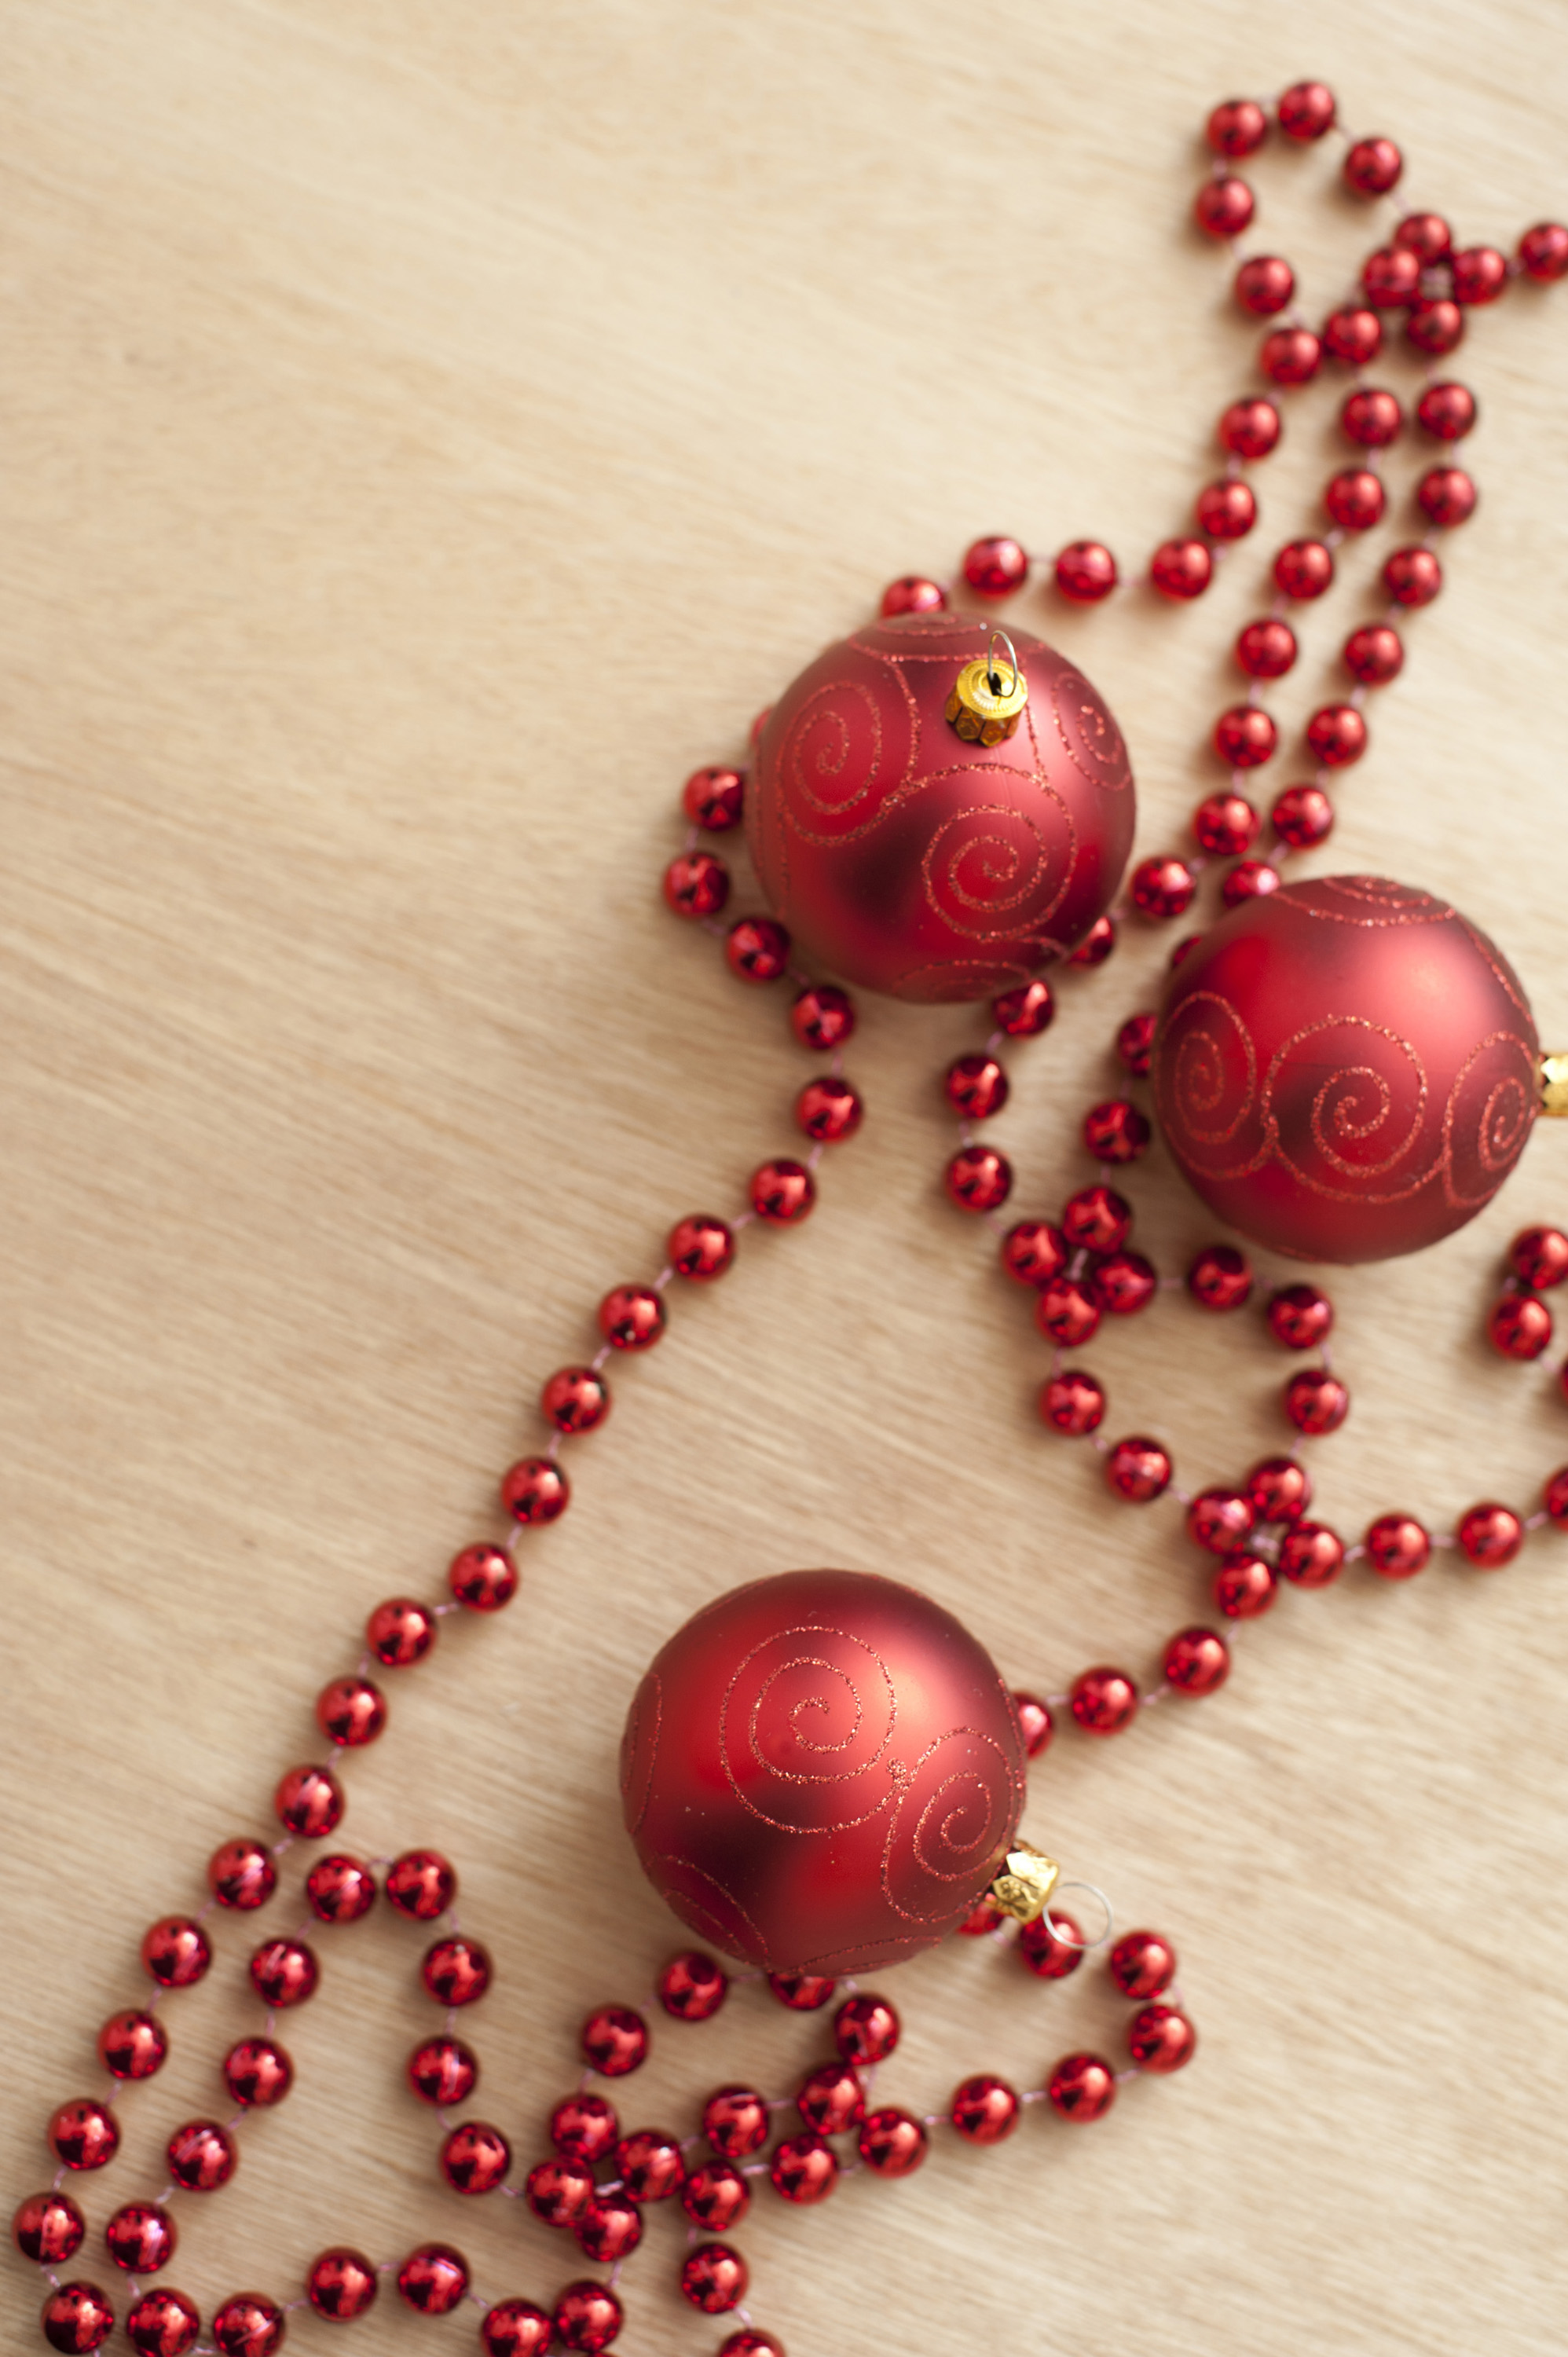 Close-up of three red Christmas balls and red beads on wooden table